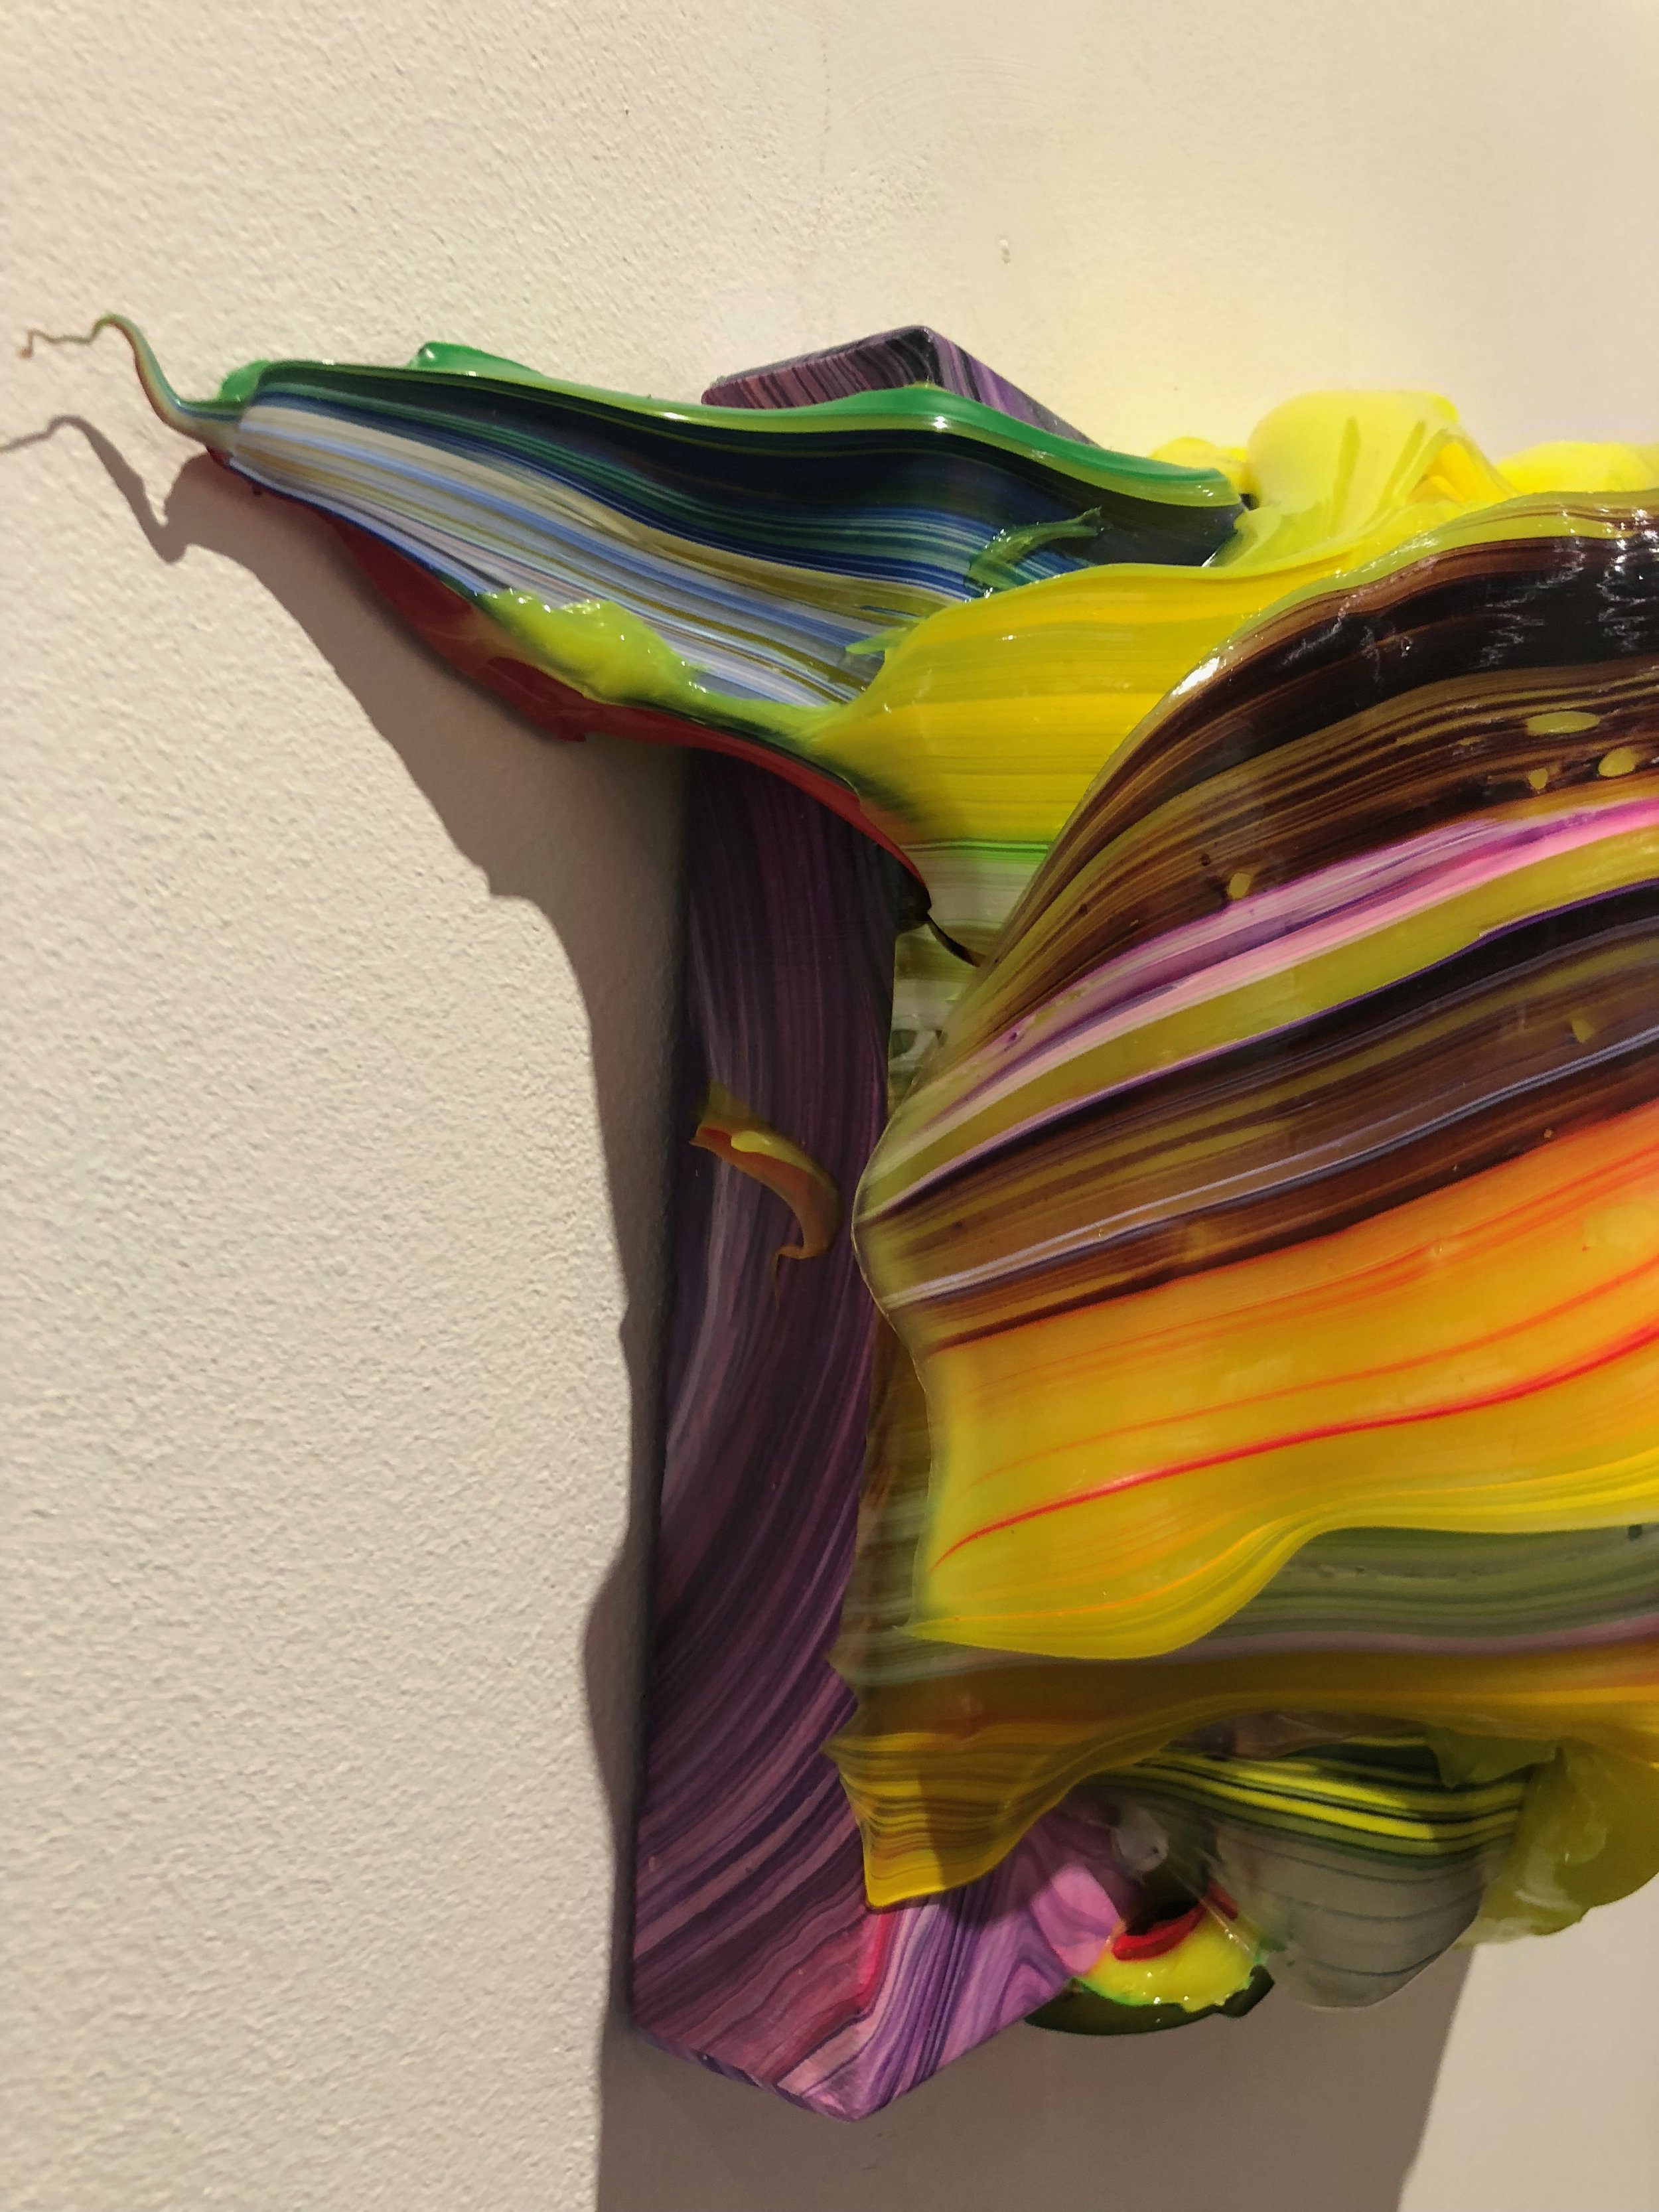 A close up of Yago Hortal's work